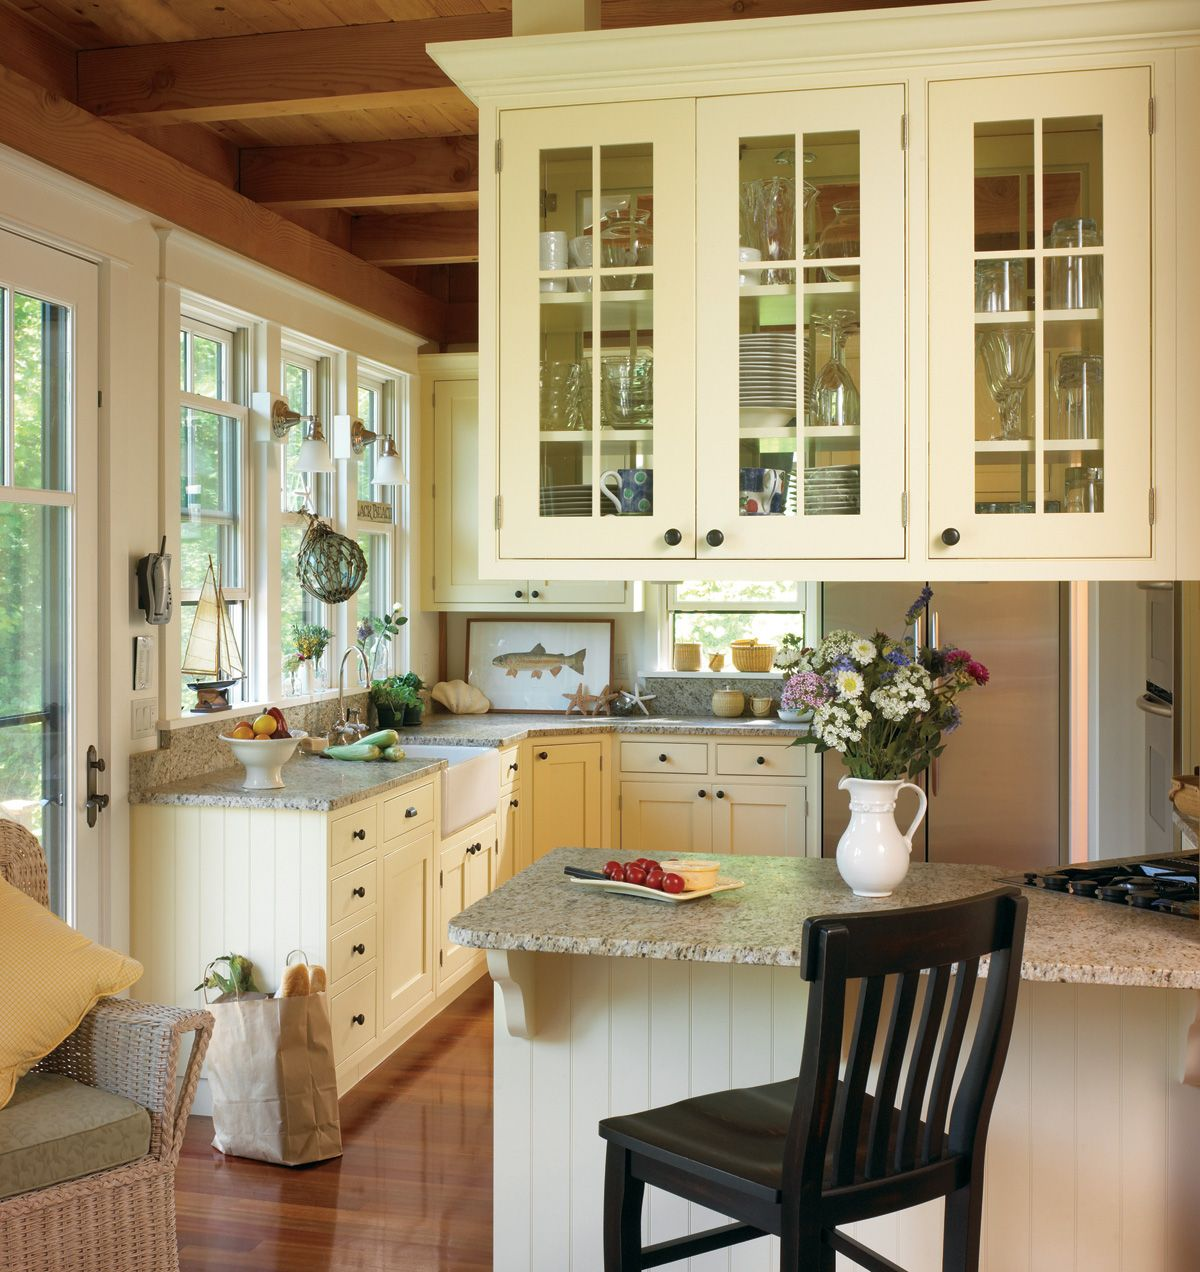 Fullsize Of French Country Cottage Kitchen Designs